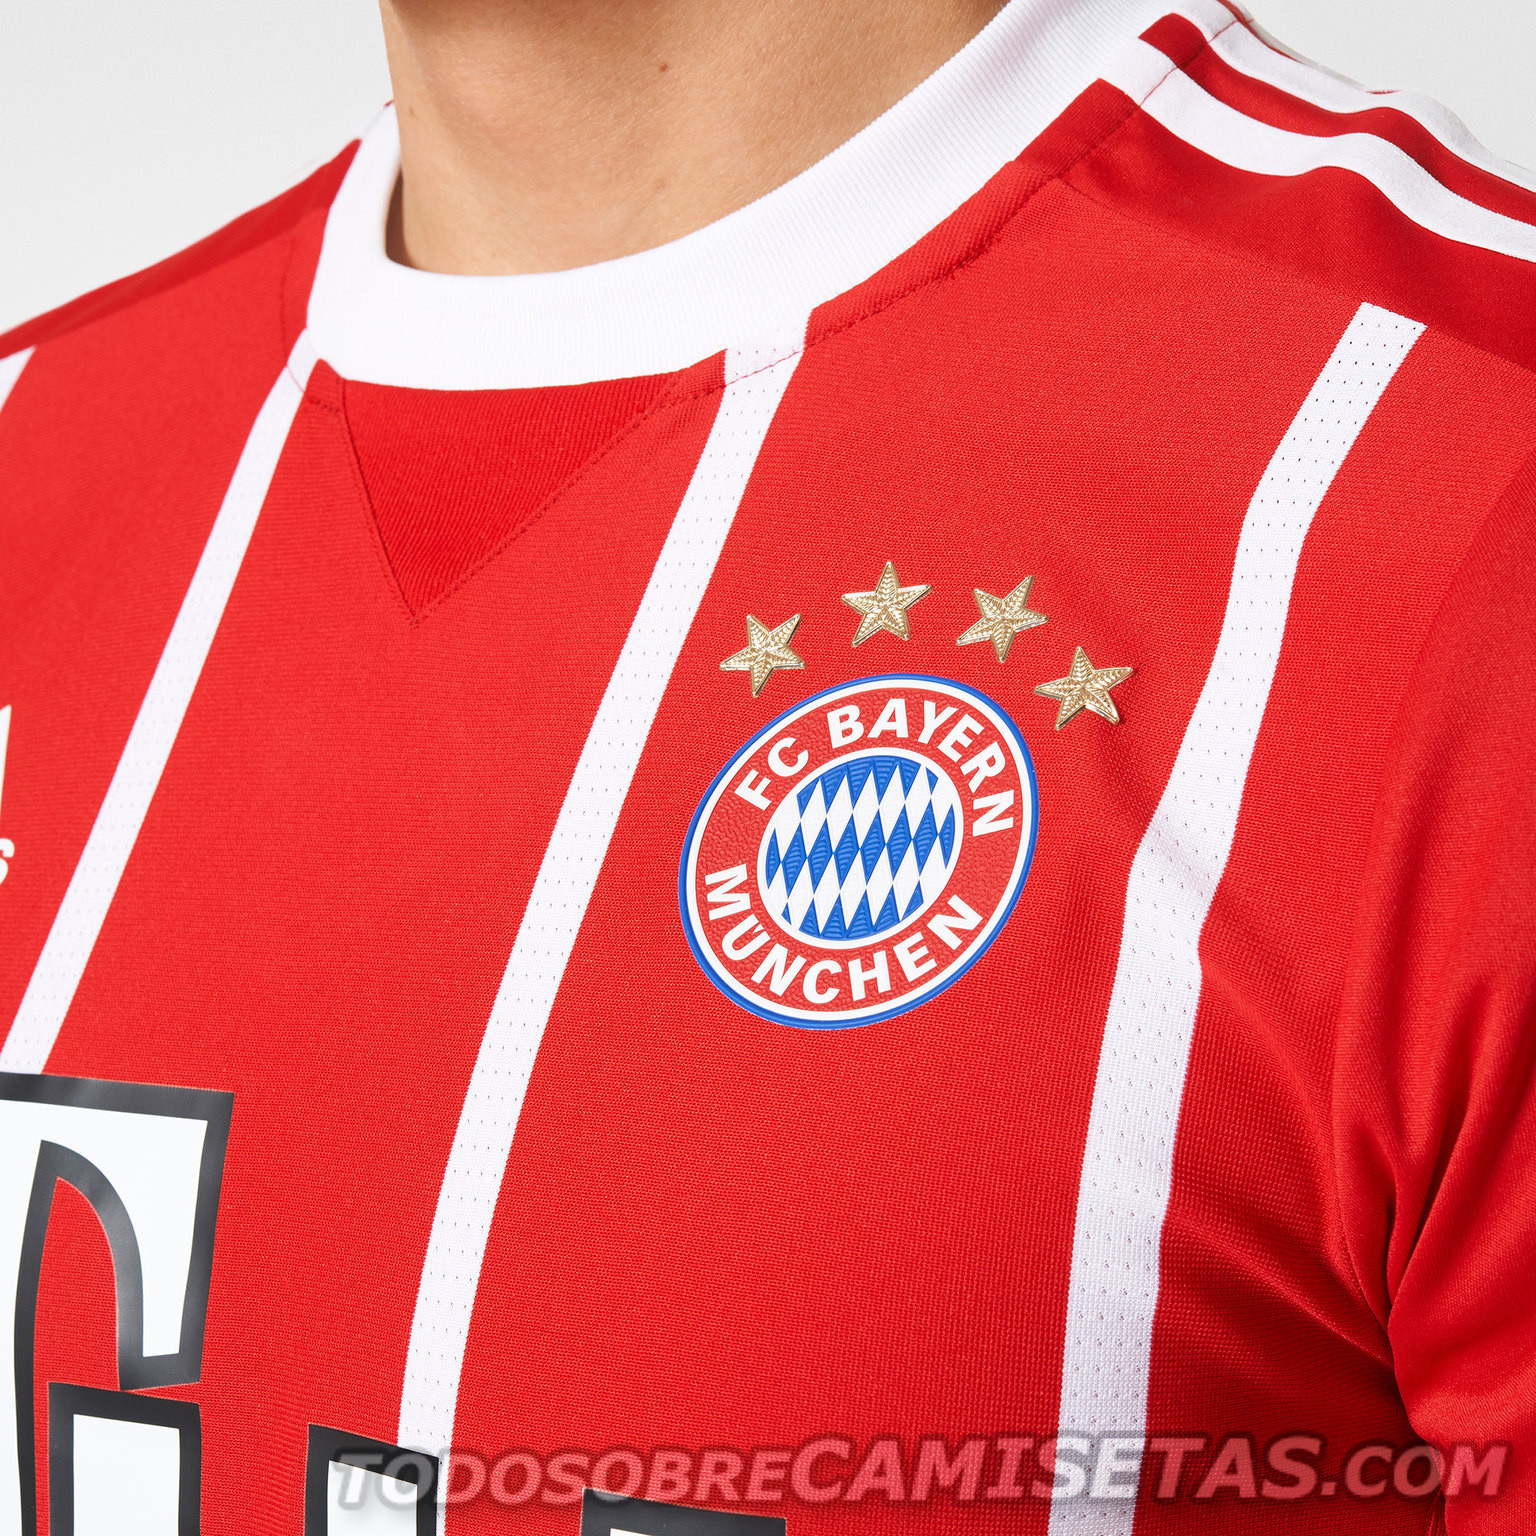 Bayern-Munich-2017-18-adidas-new-home-kit-4.jpg